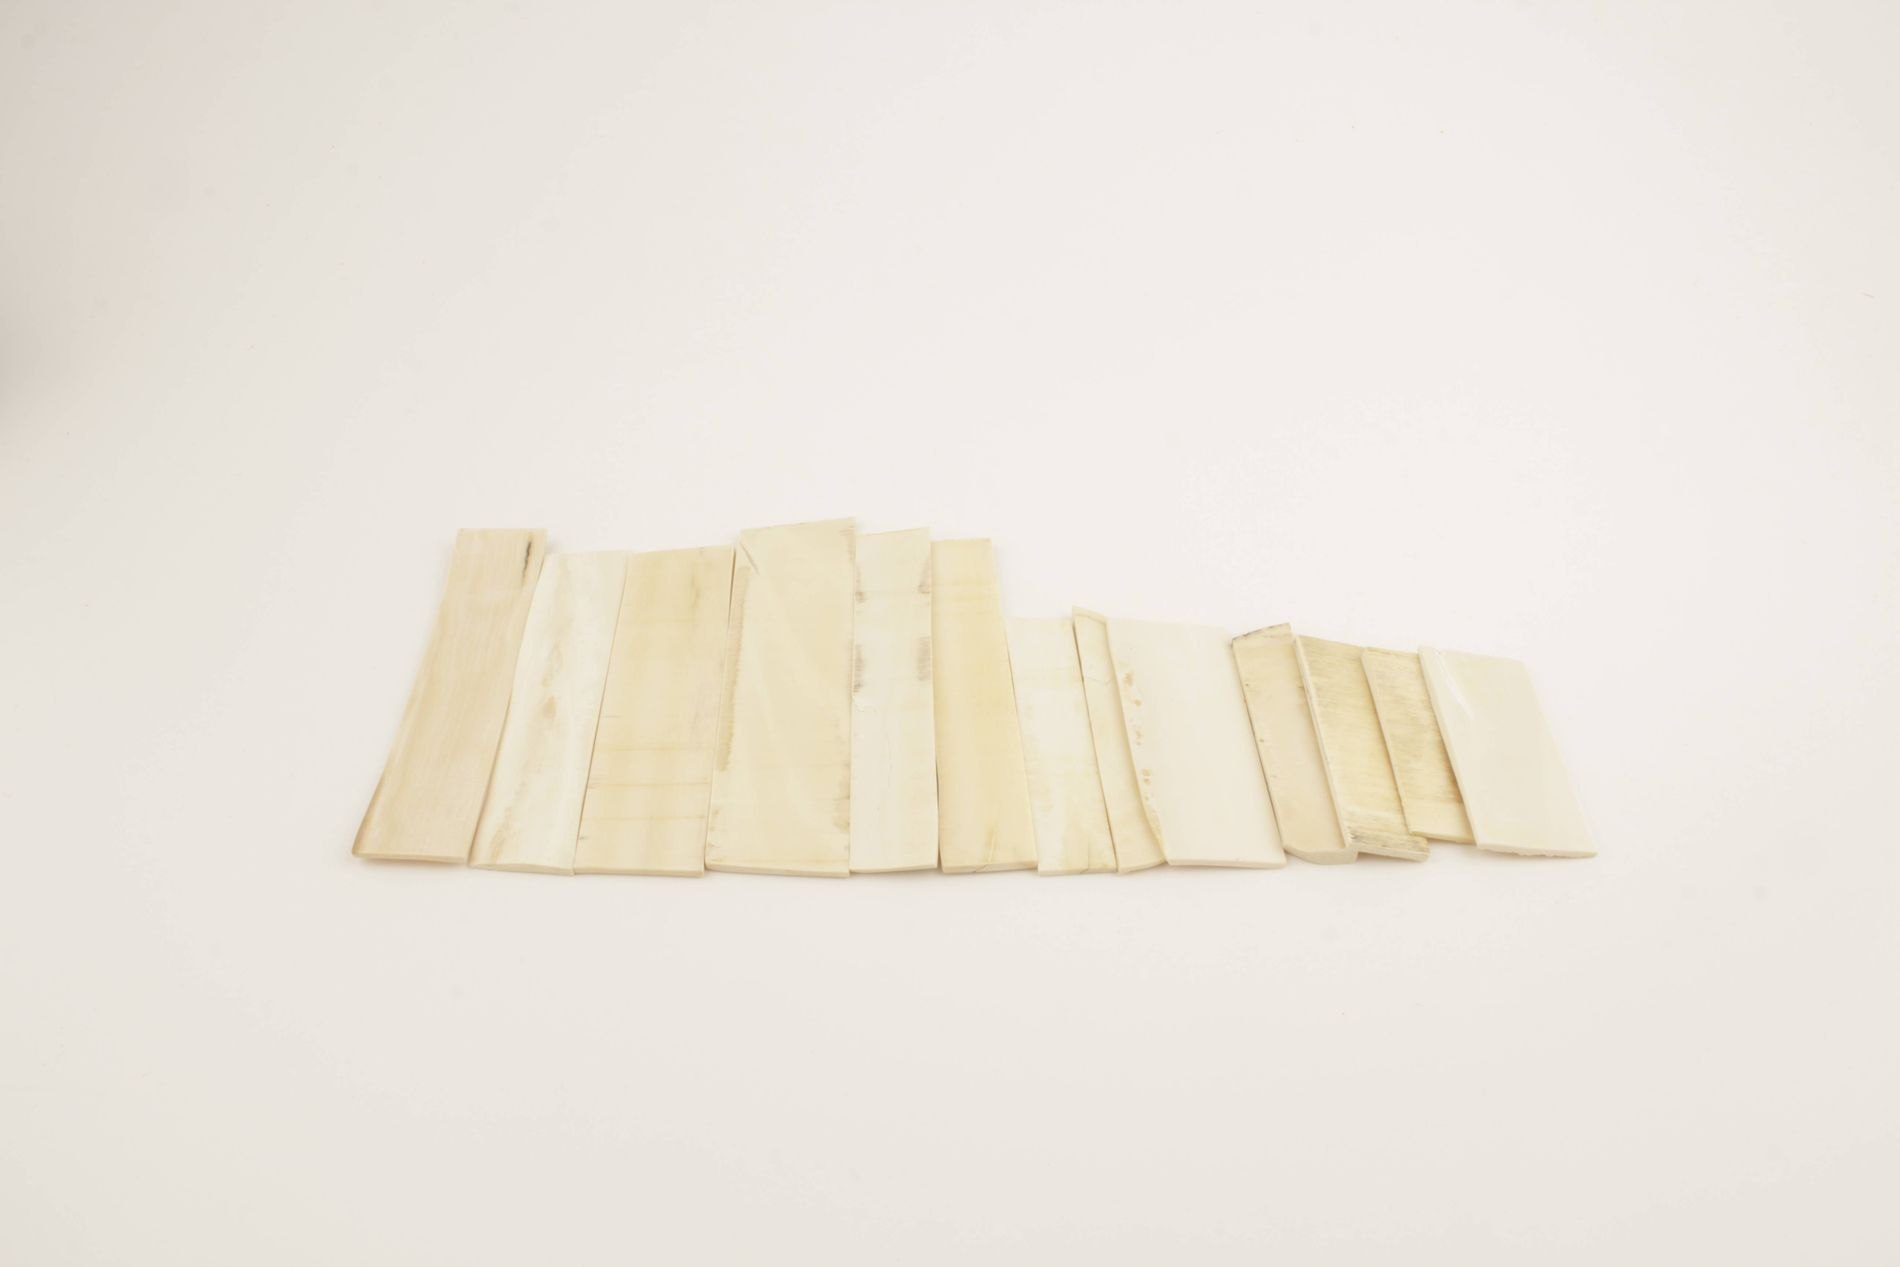 White mammoth ivory pieces